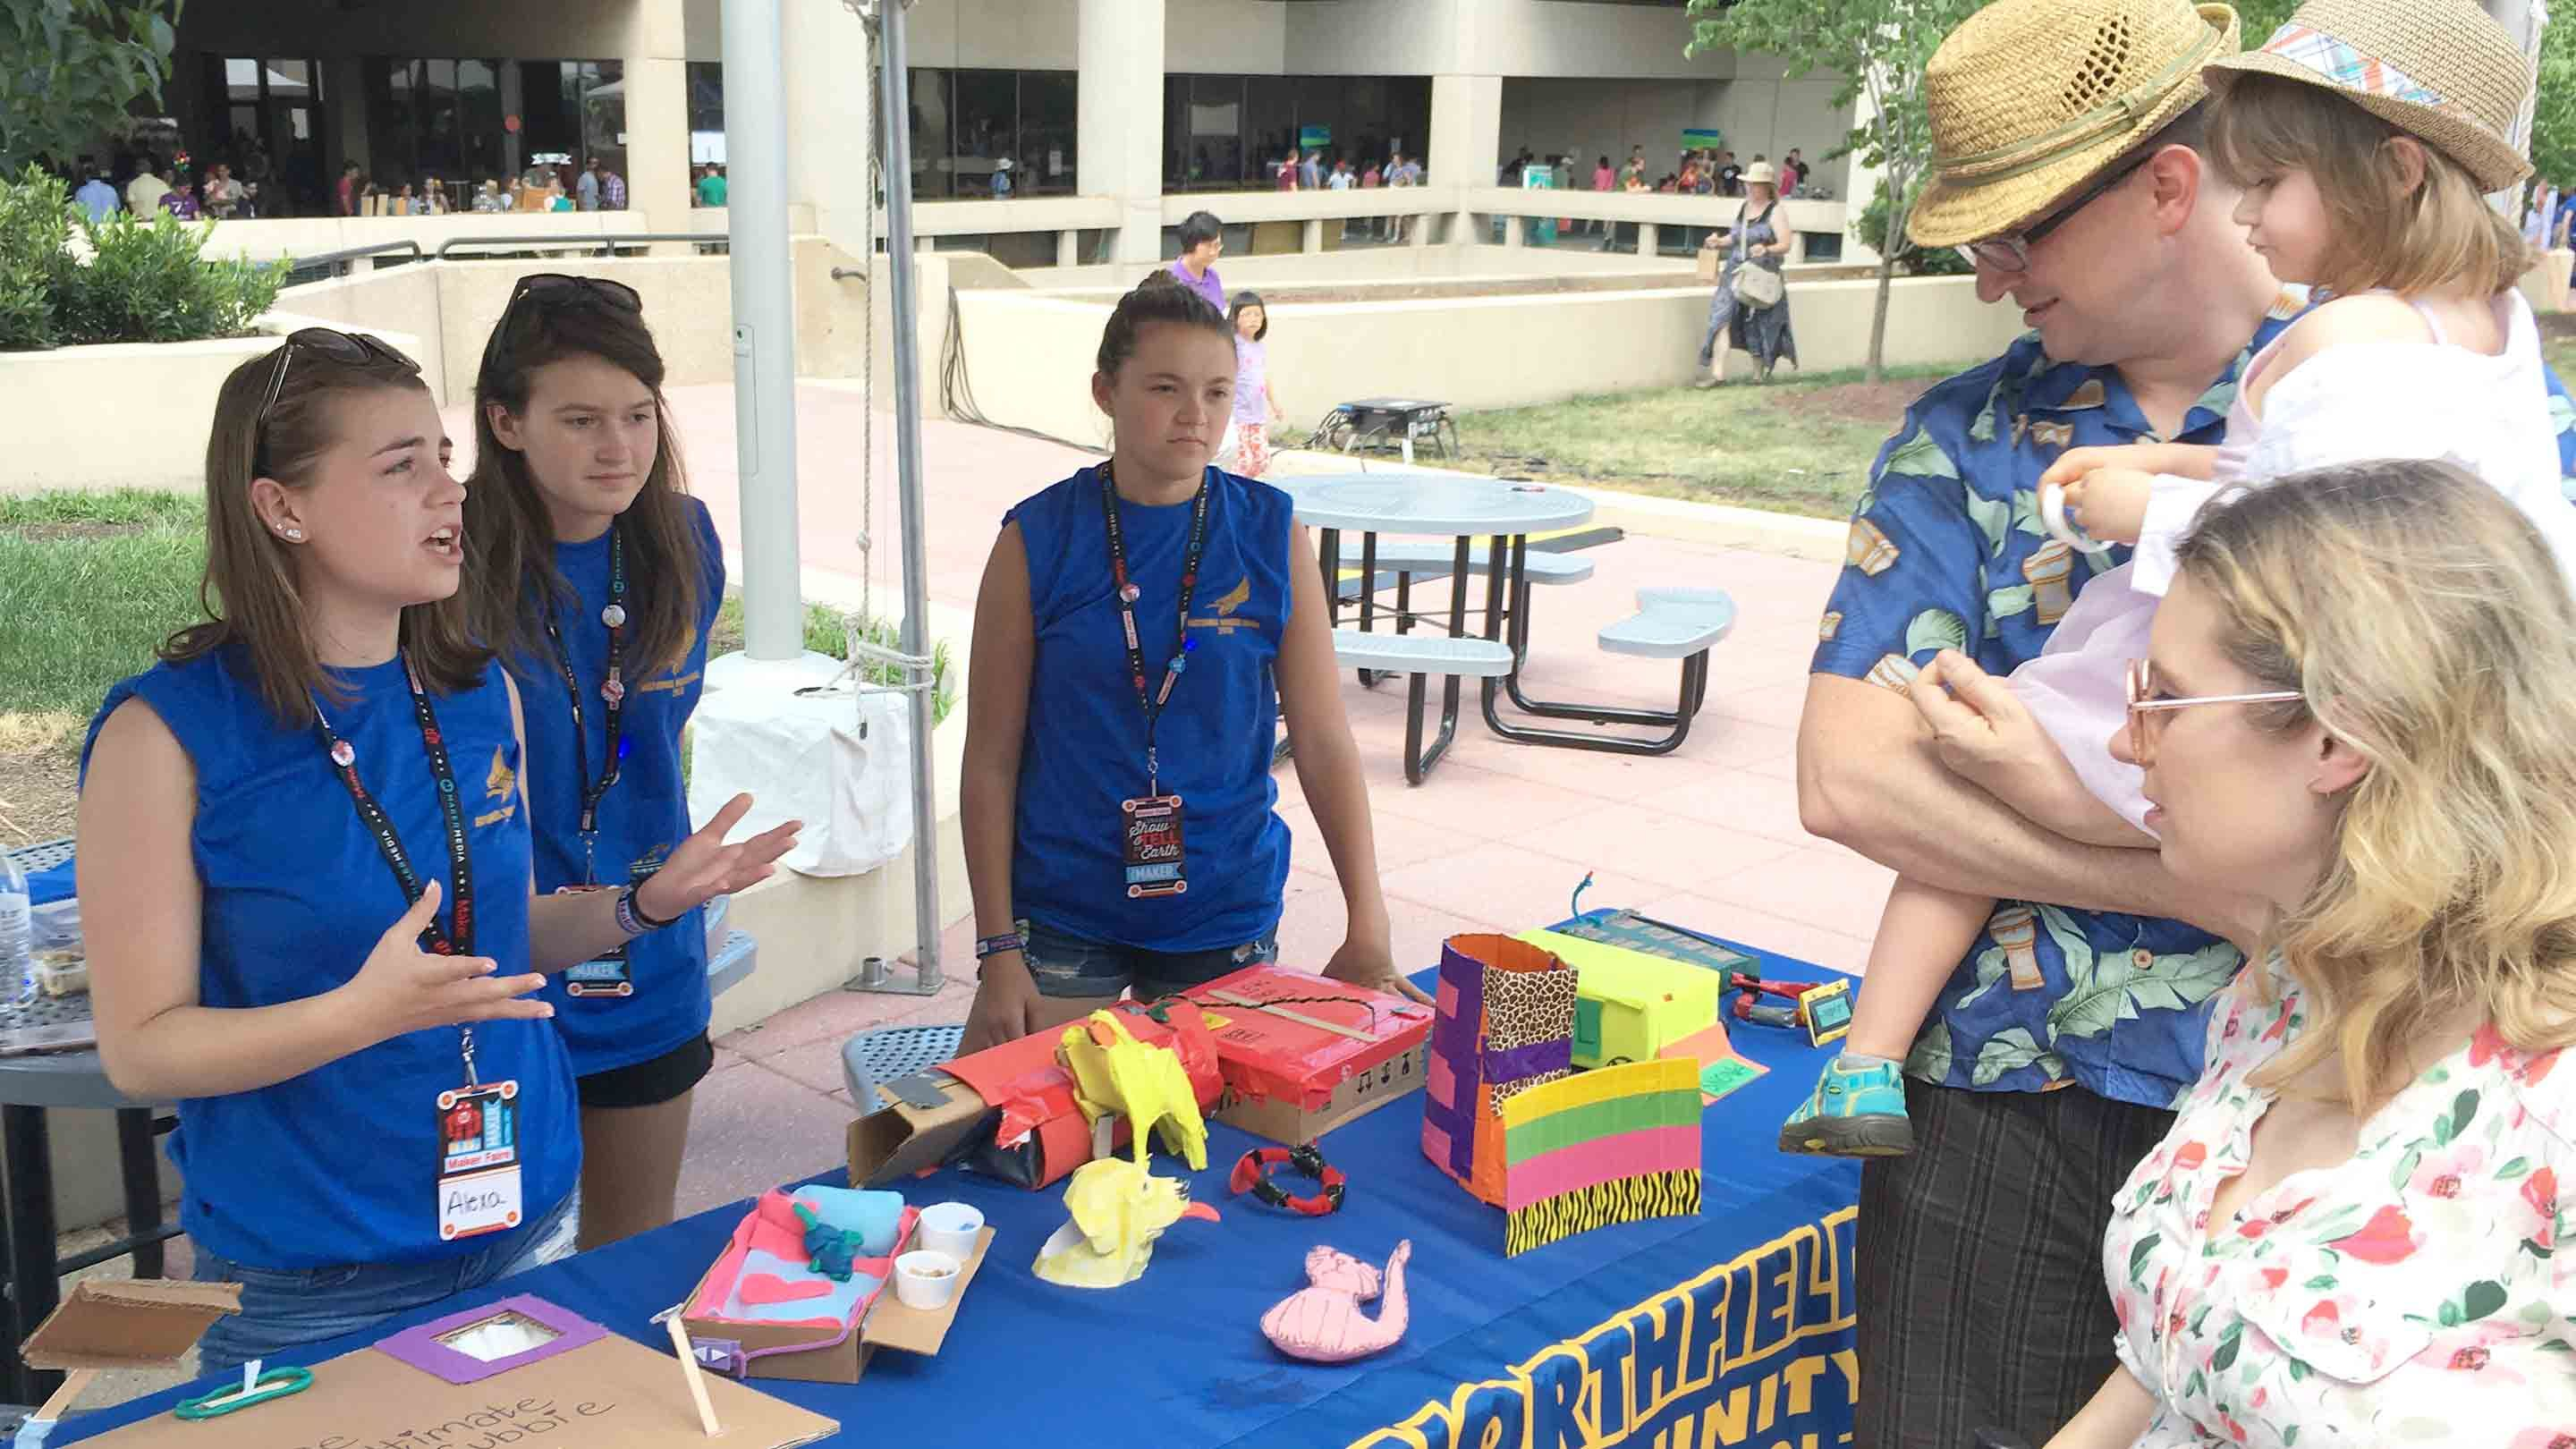 Students present their ideas at the 2016 National Maker Faire.